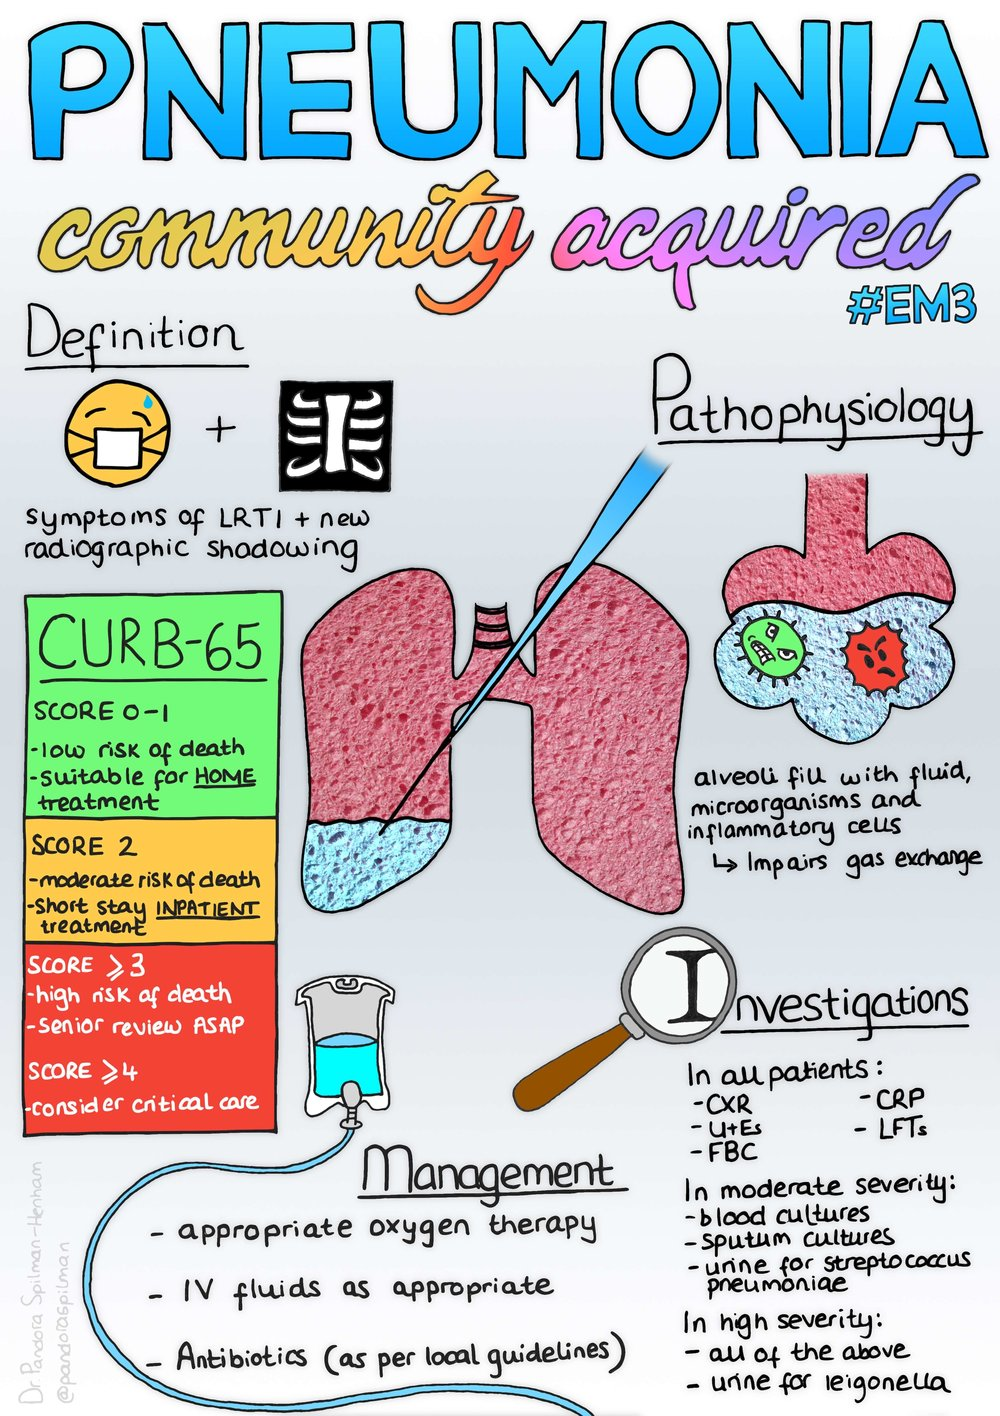 Pneumonia (Community Acquired) infographic.jpg